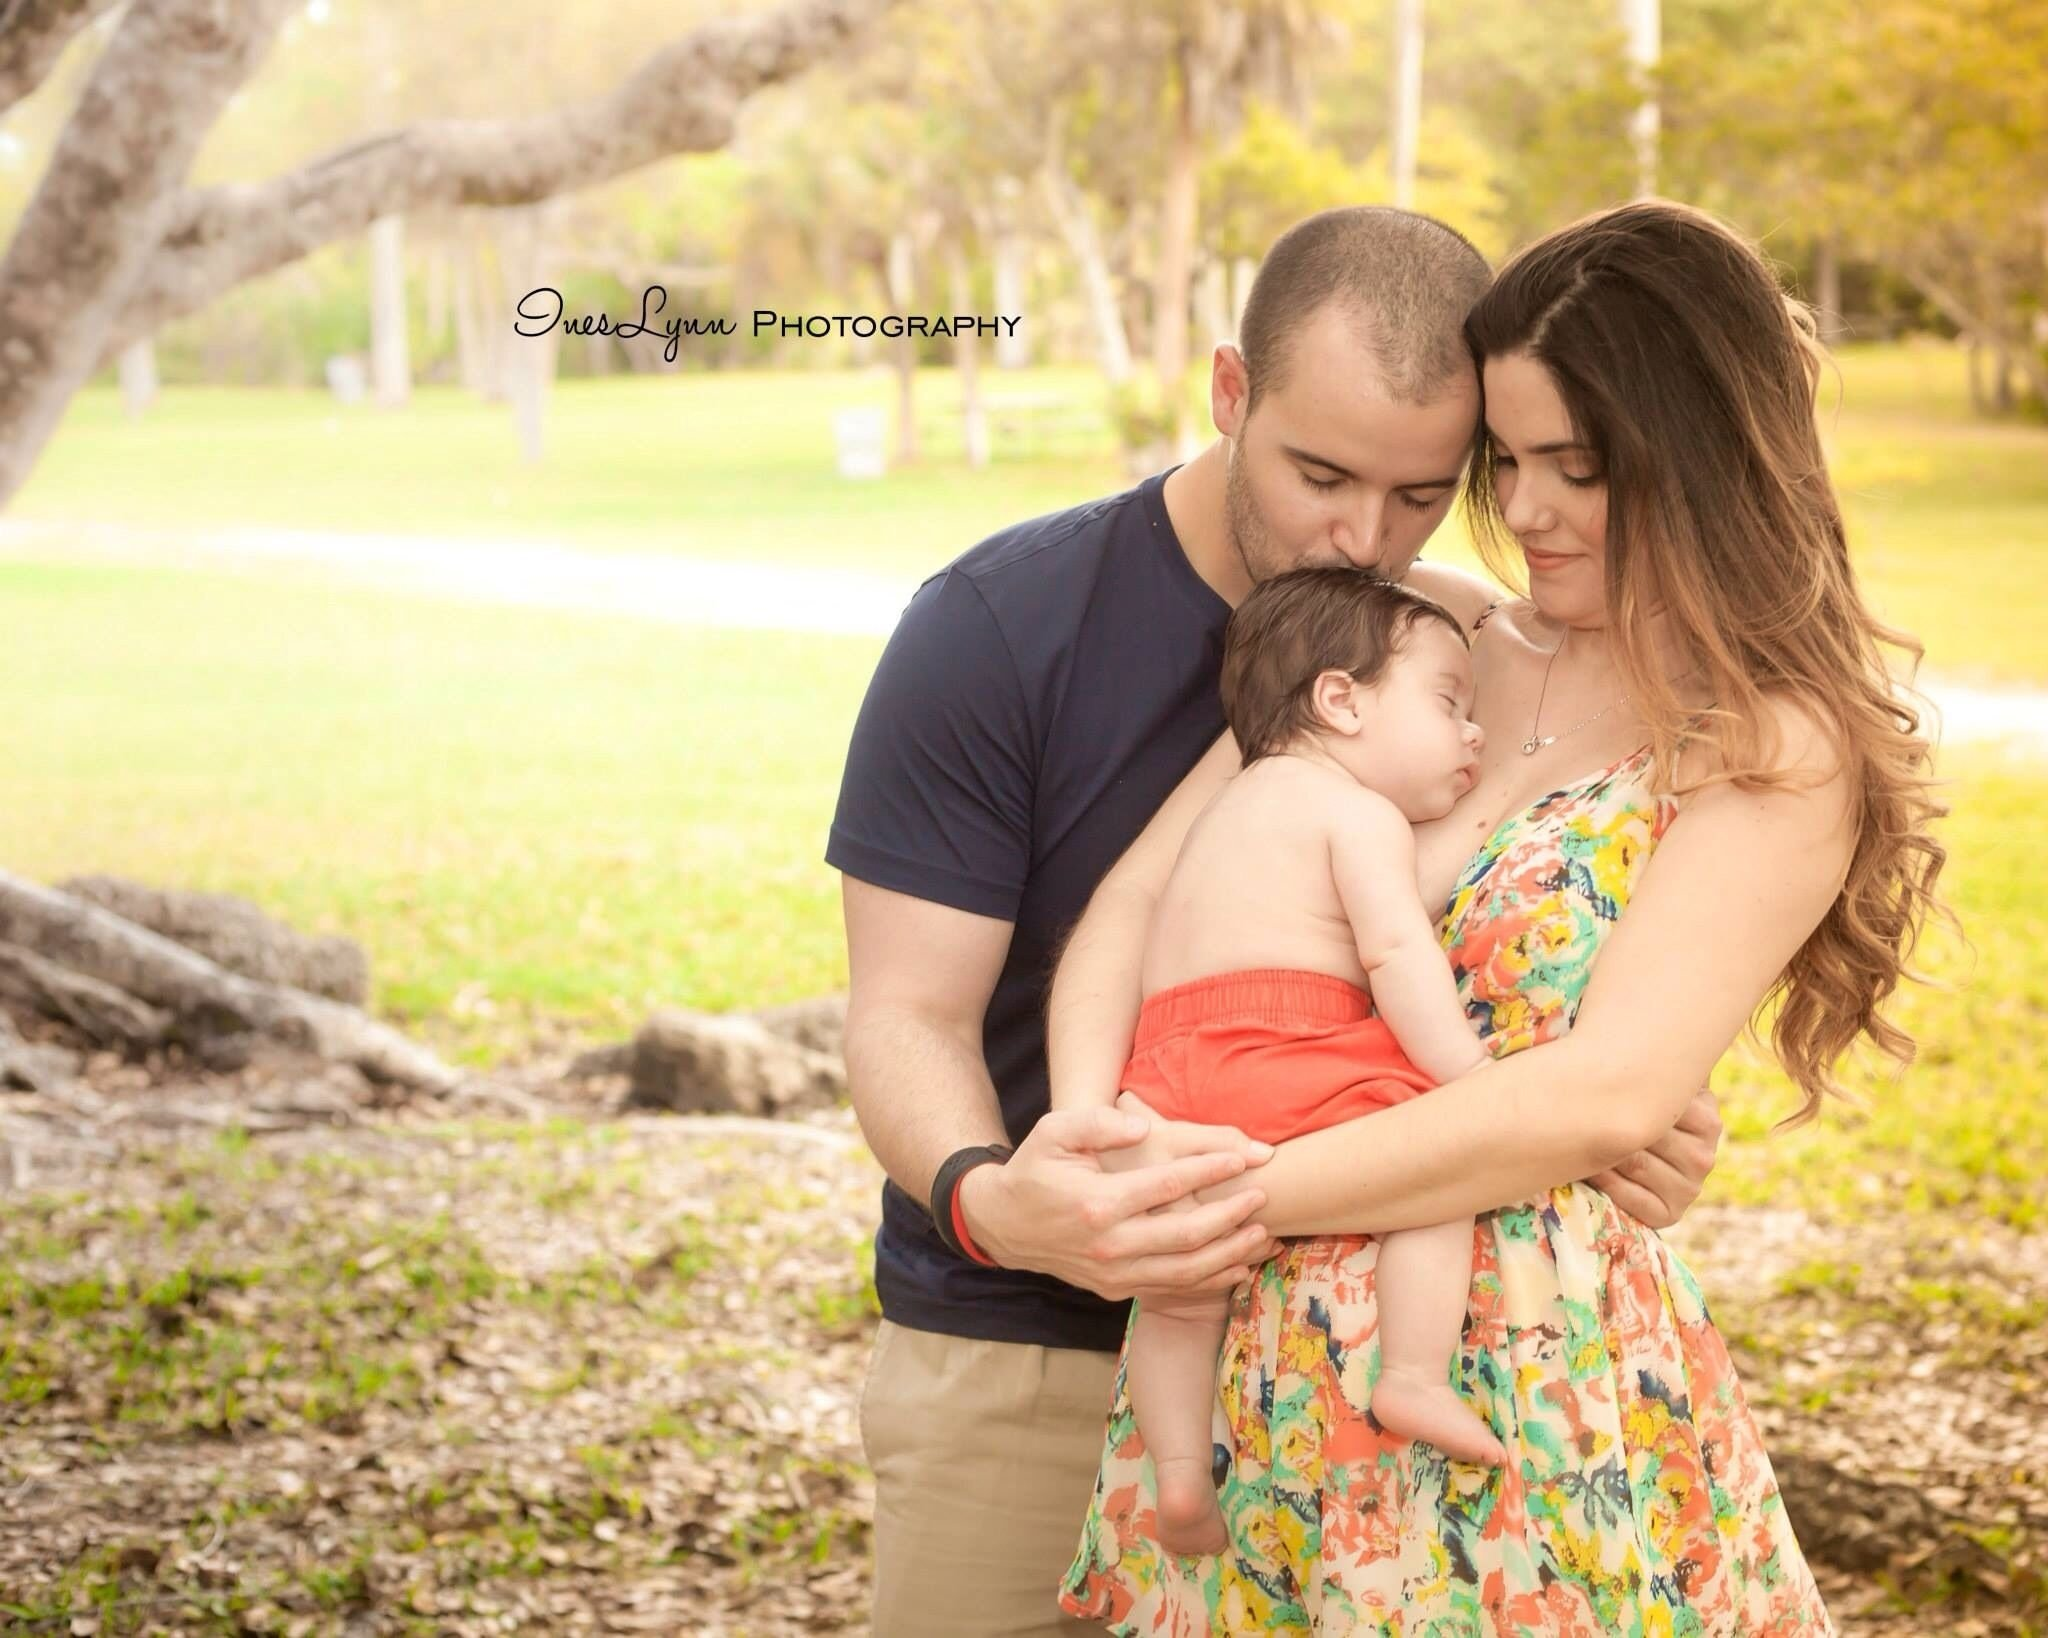 10 Stunning Family Picture Ideas With Baby baby boy photography 3 months old baby photo ideas outdoor 6 2020